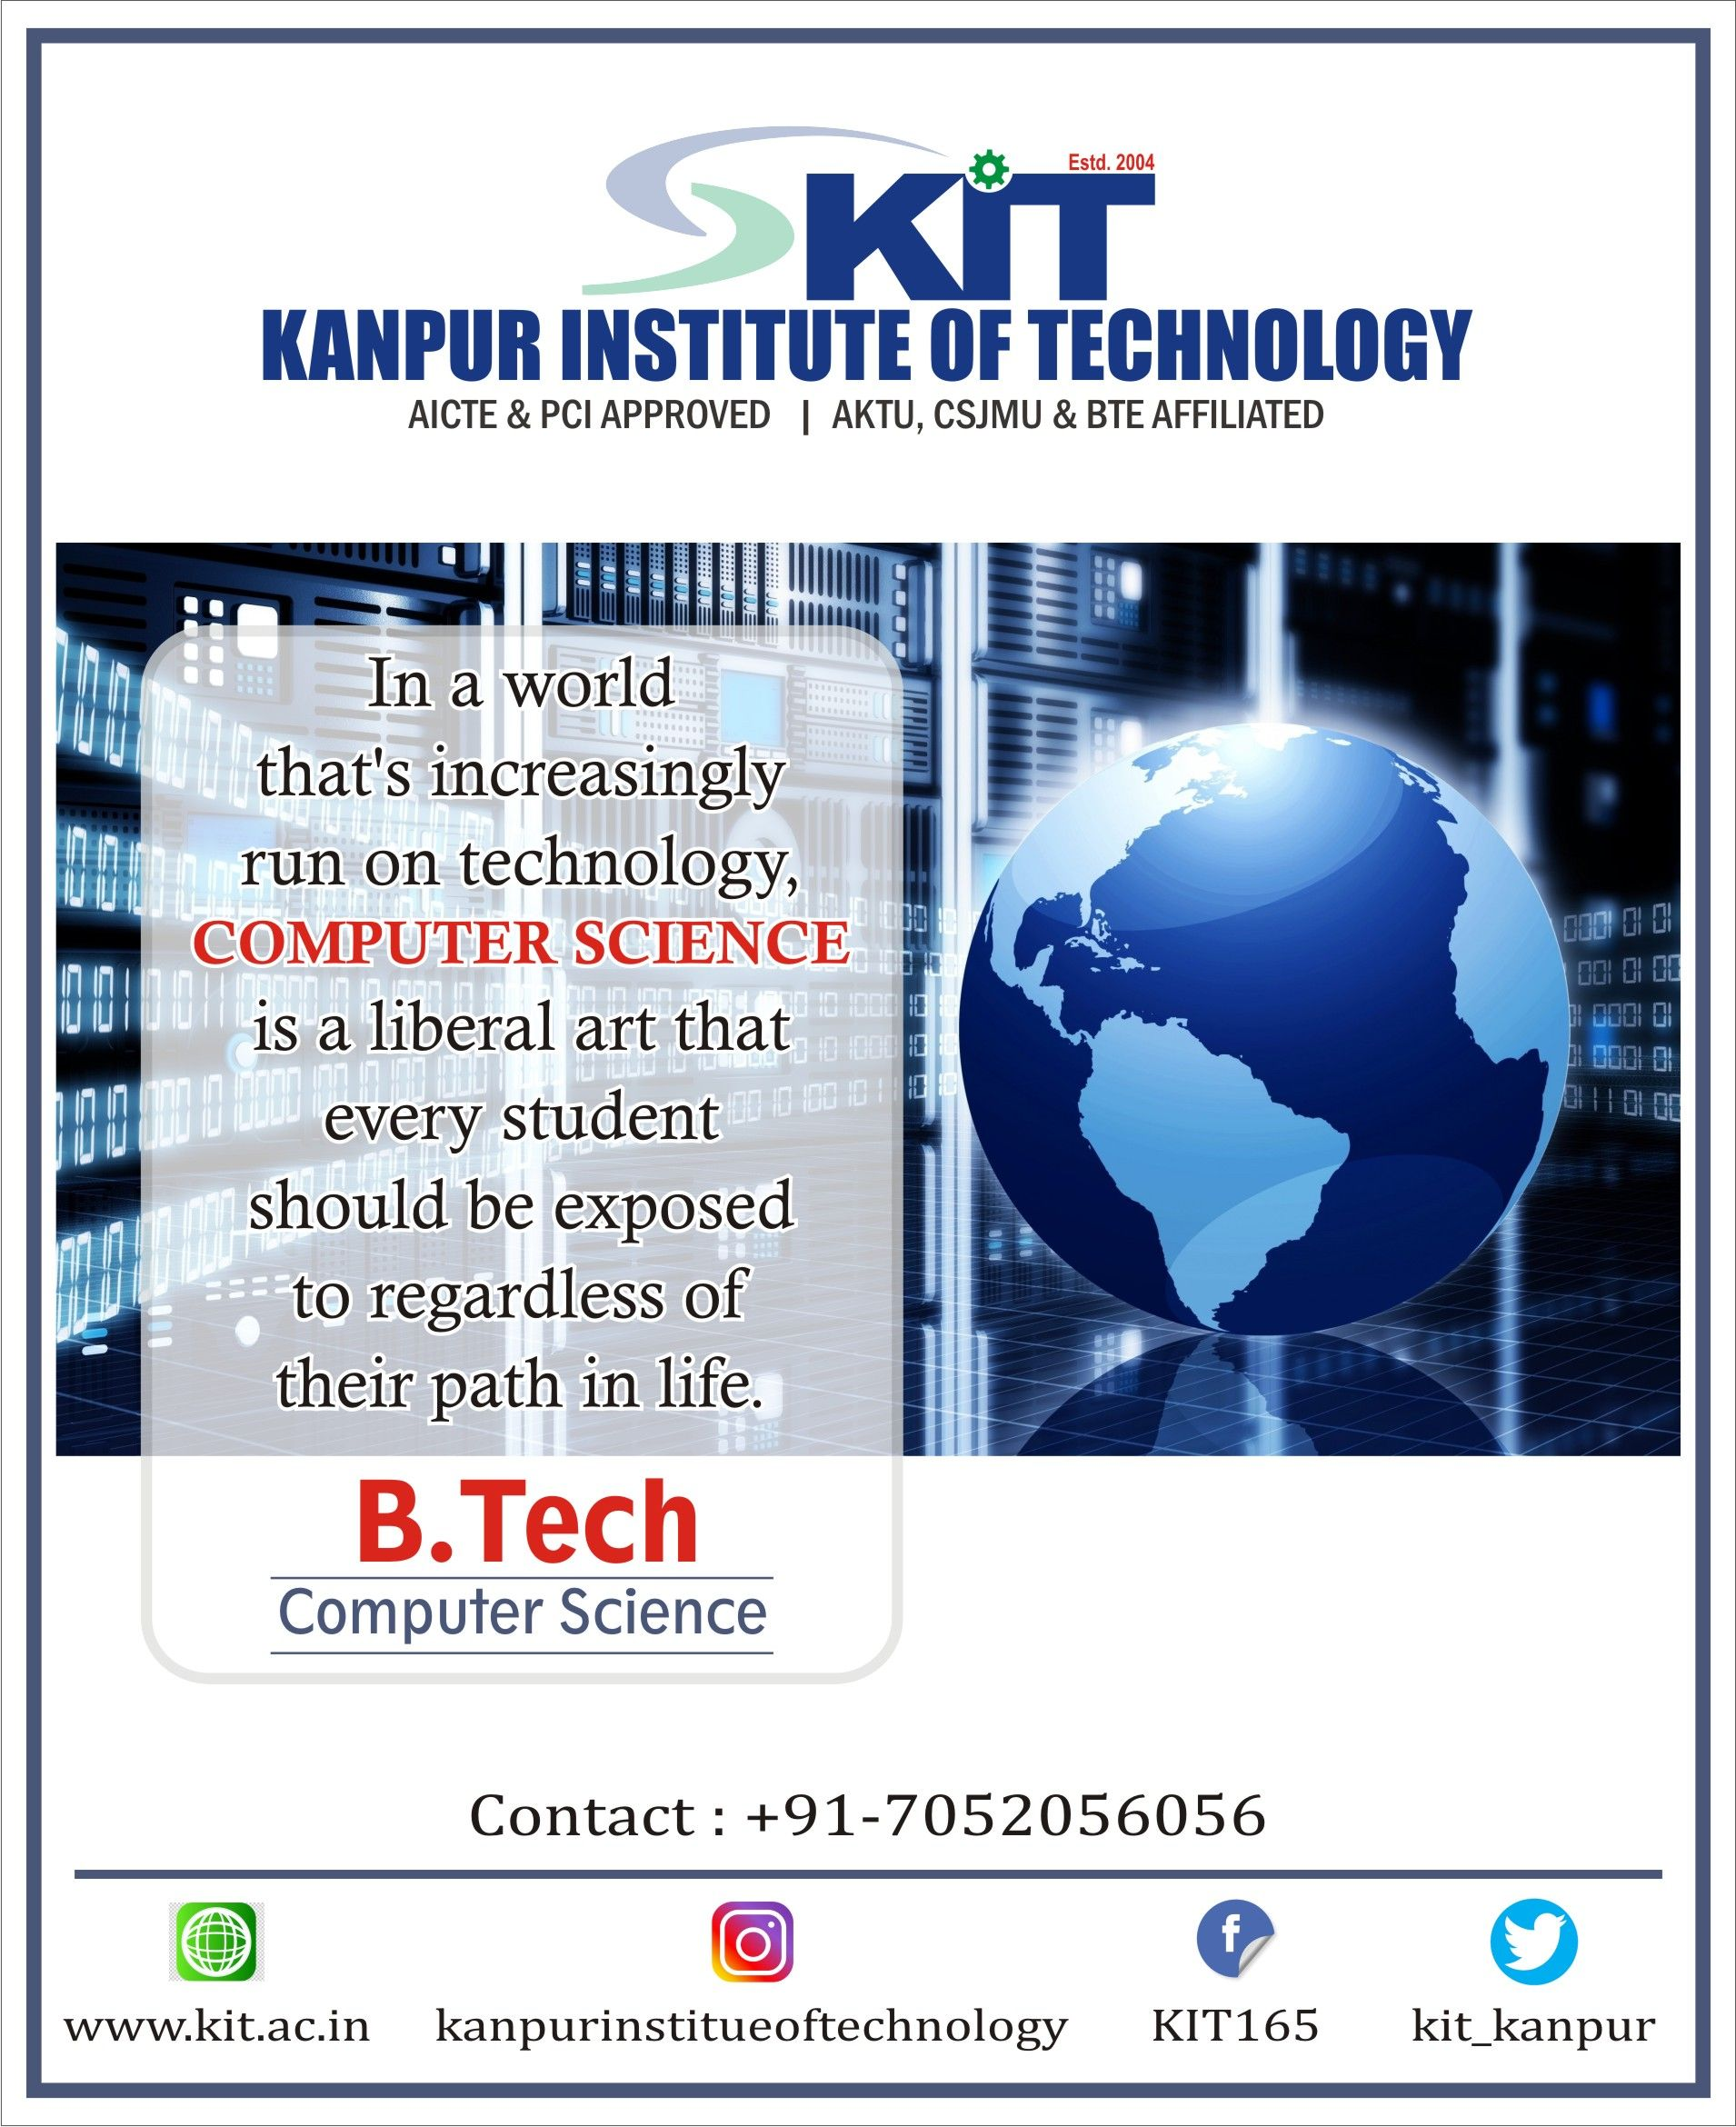 Pin By Kanpur Institute Of Technology On Kanpur Institute Of Technology Kit In 2020 Computer Science Liberal Arts Facebook Sign Up